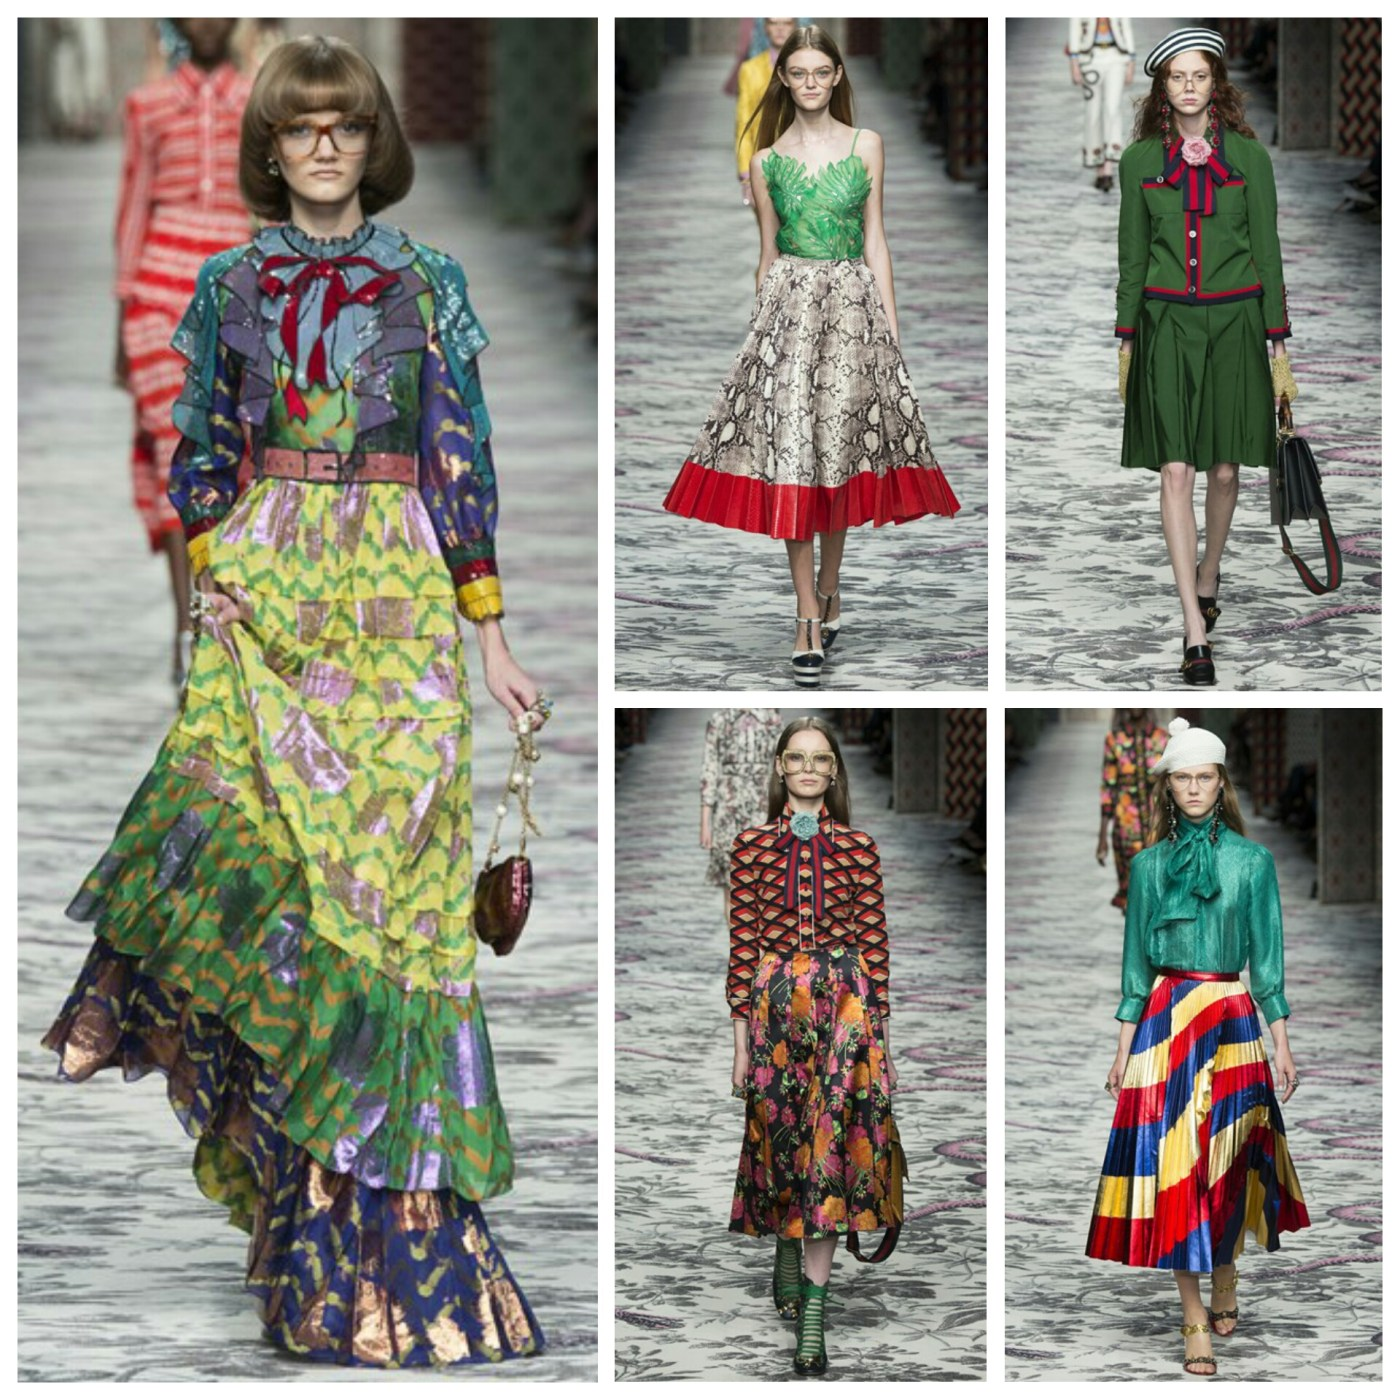 Outfits from the Gucci Spring '16 catwalk, via Vogue.com